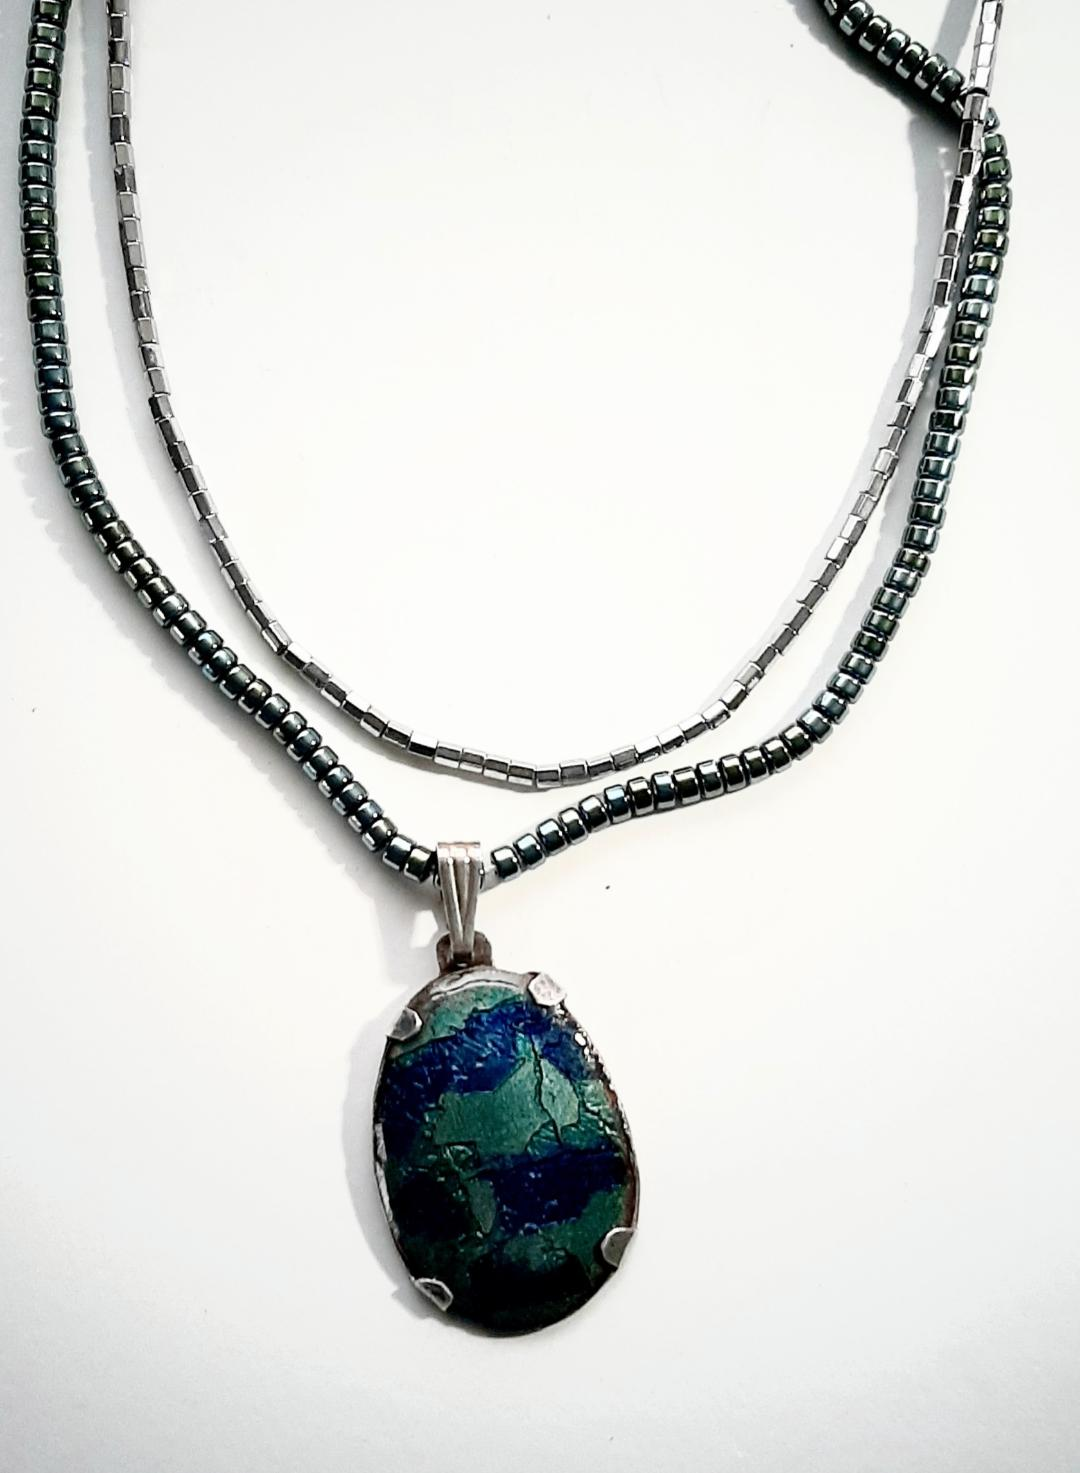 Blue Turquoise Pendant with Basse-taille